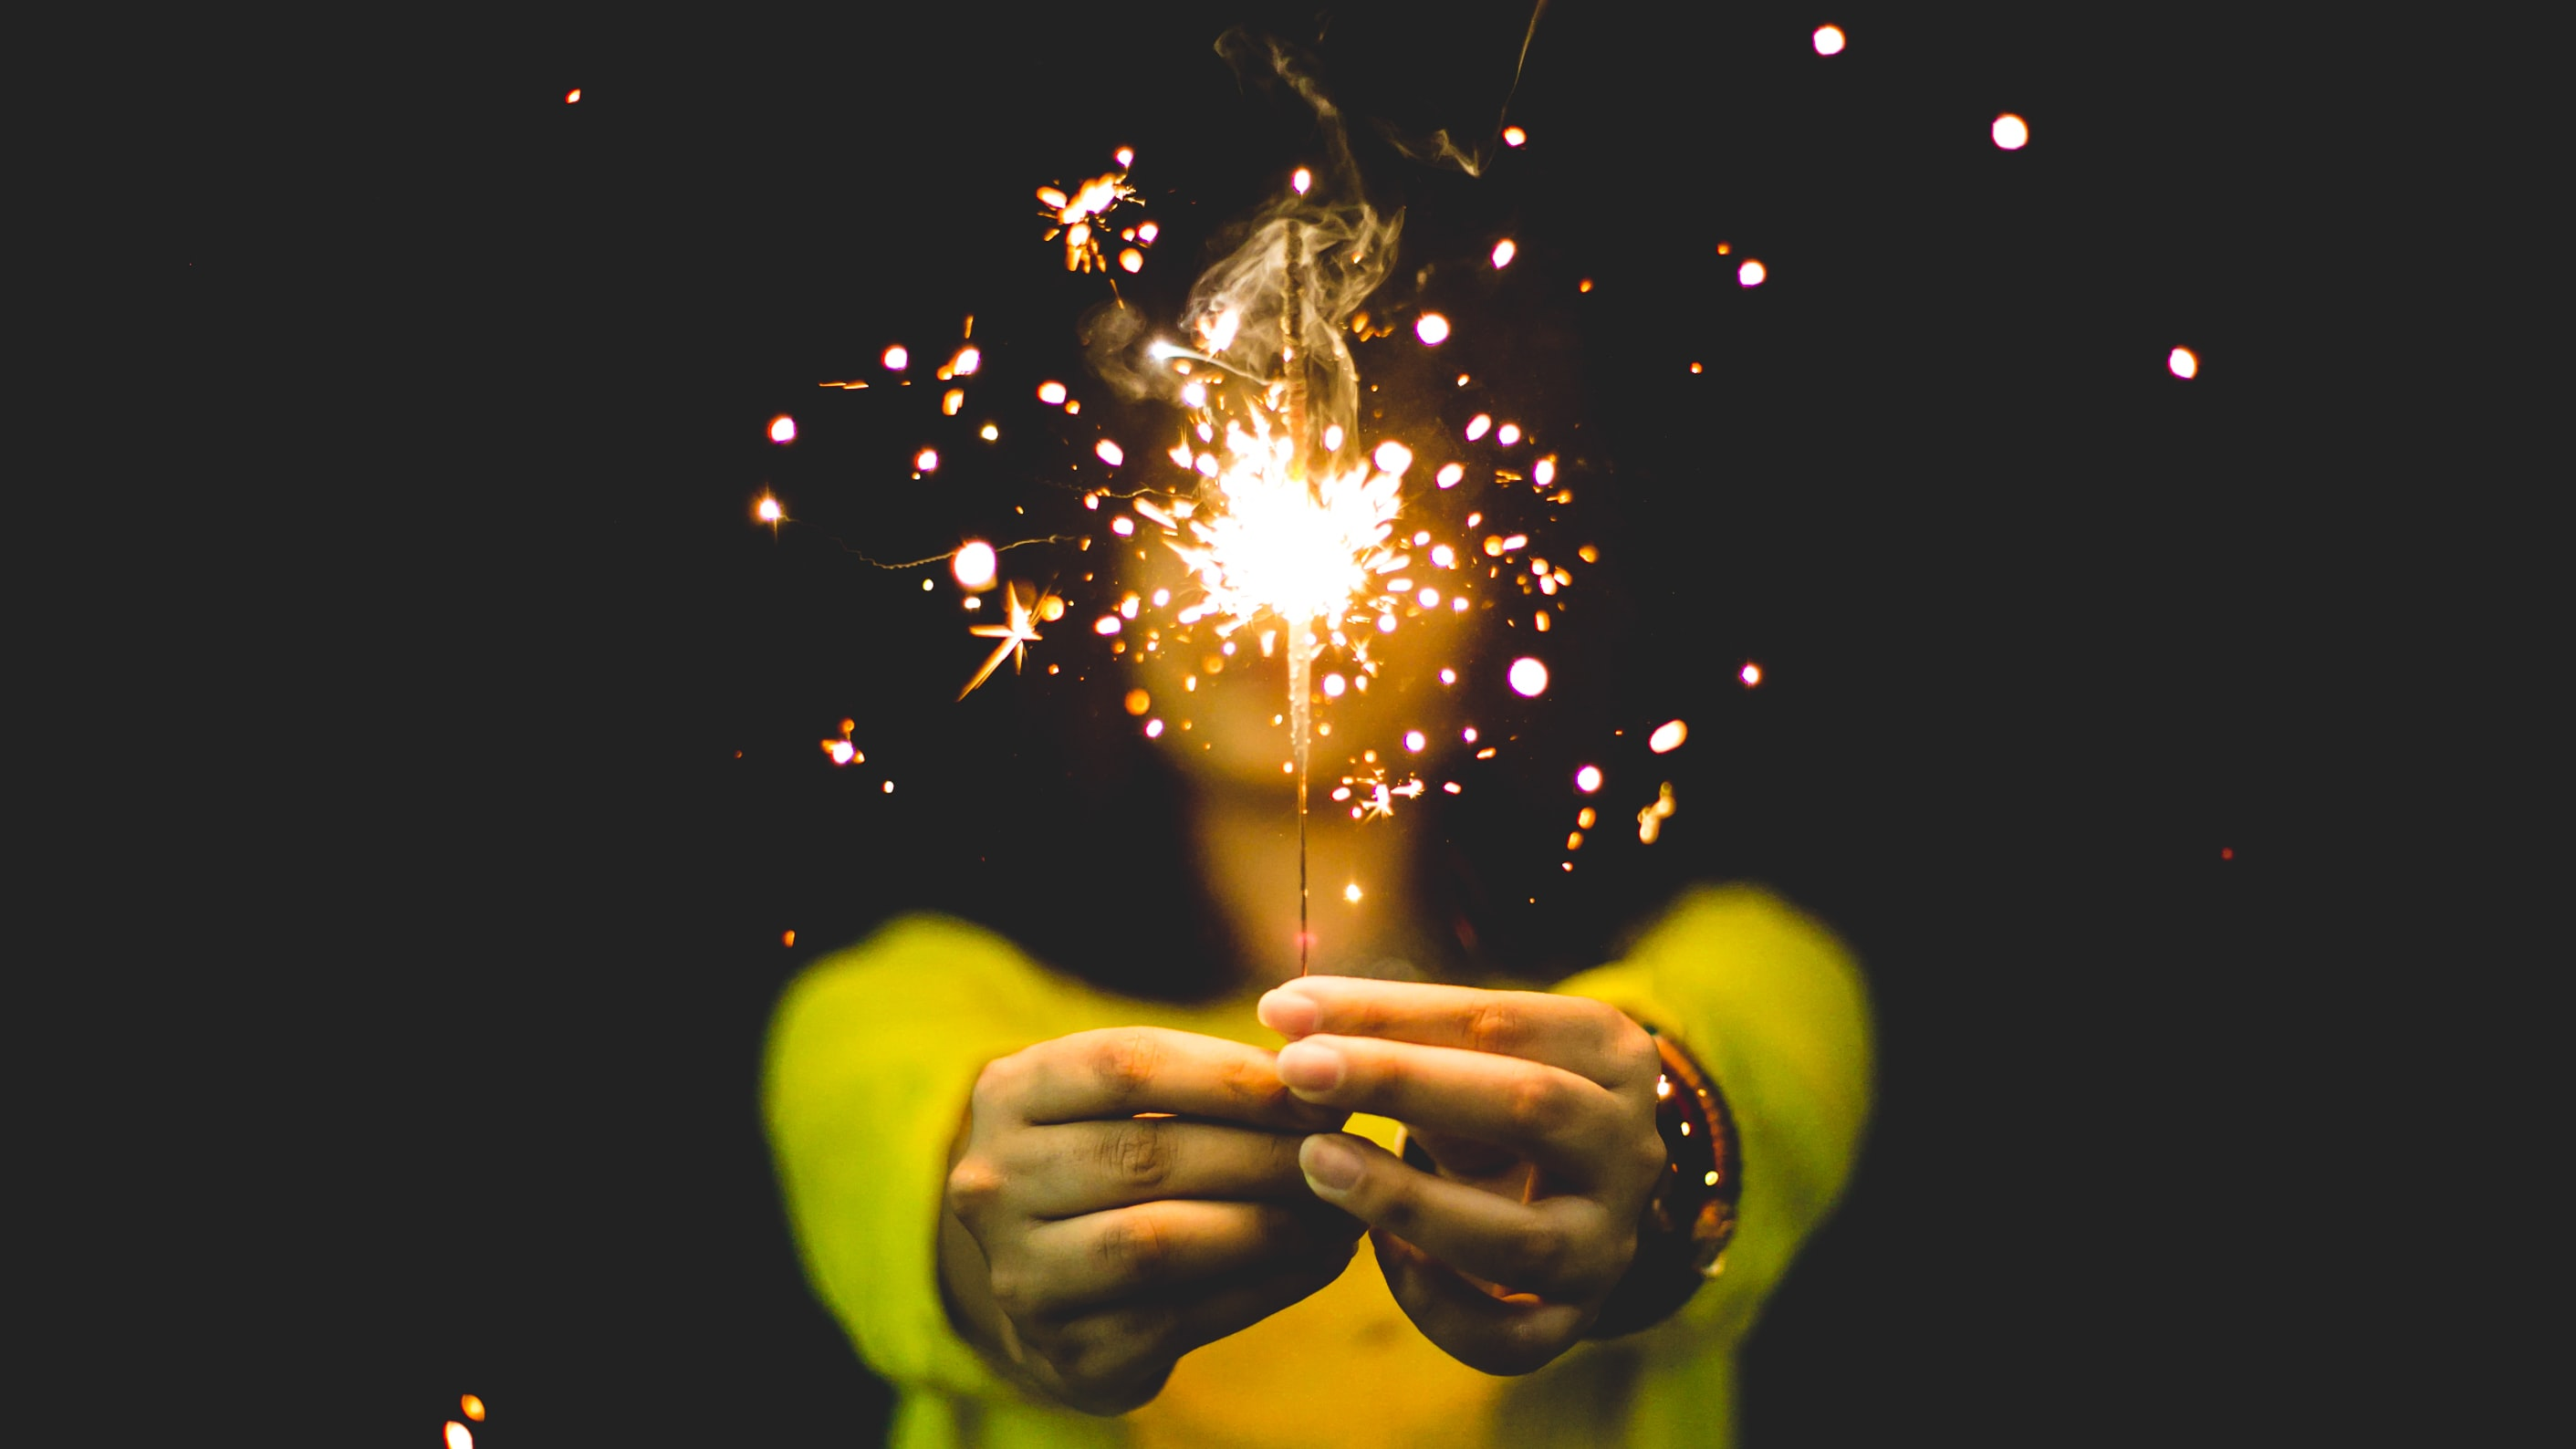 woman wearing green shirt holding sparkler